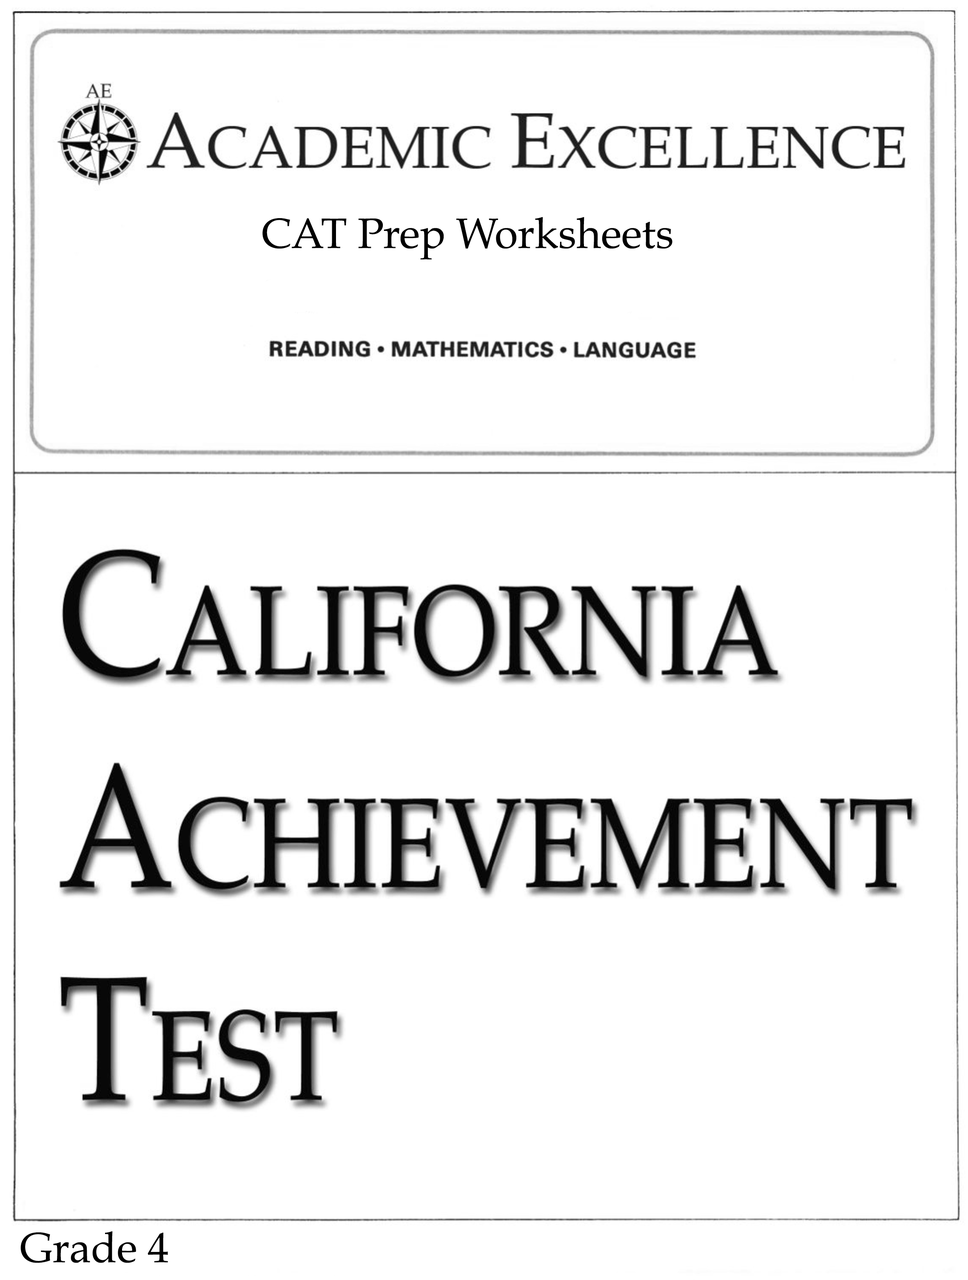 medium resolution of CAT Prep Pack: Grade 4 - PDF Download - Academic Excellence